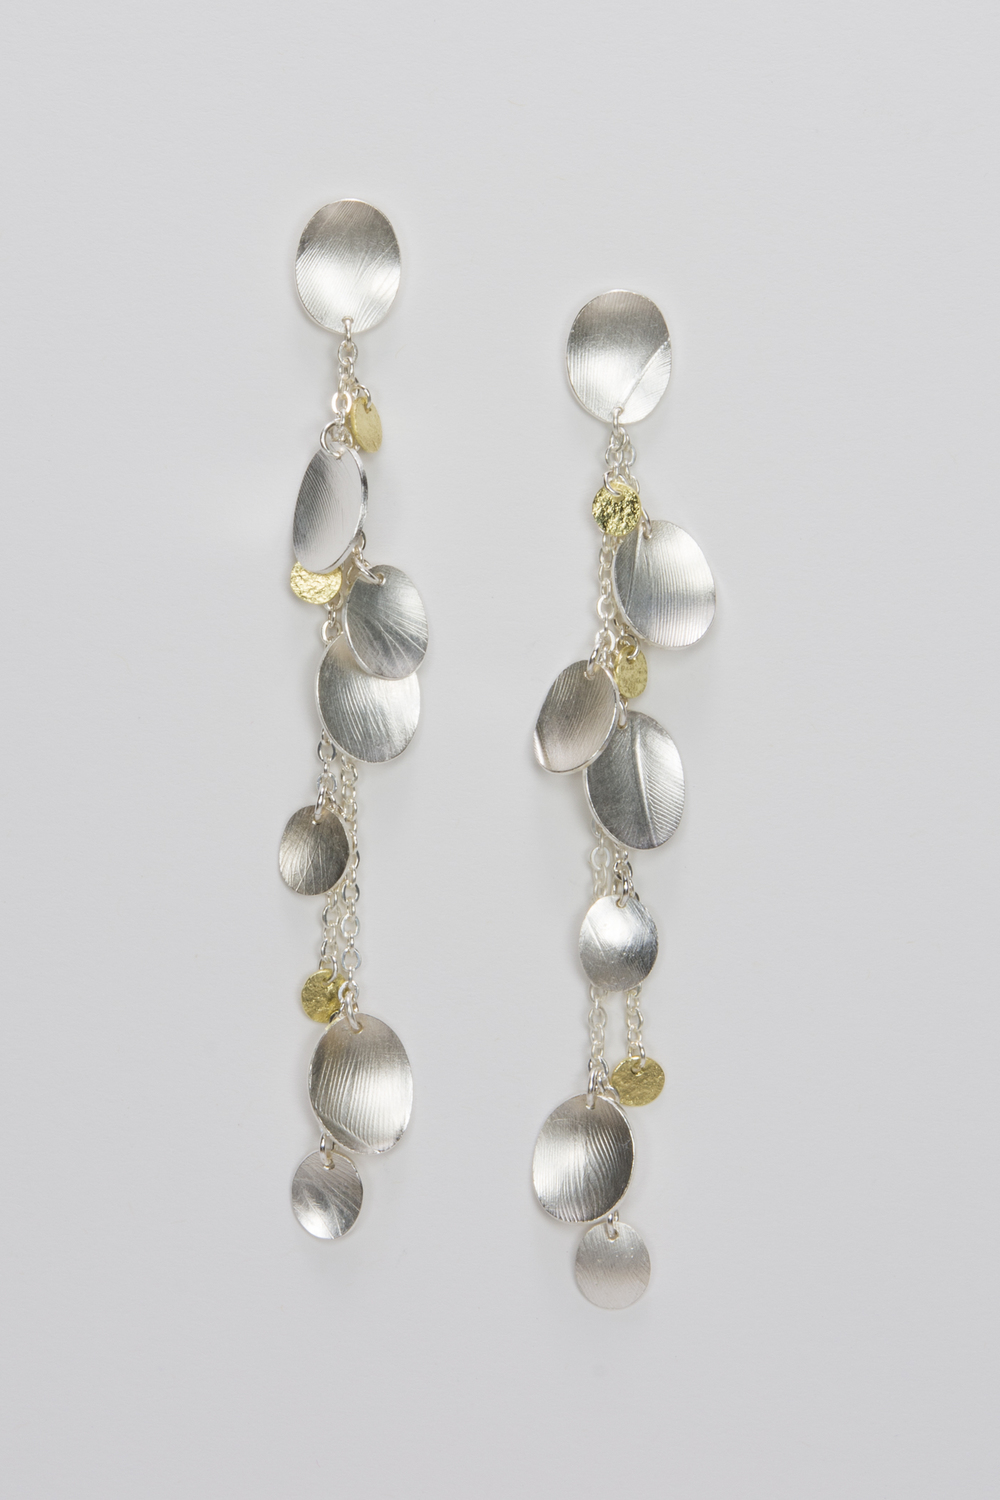 long dangle post earrings - sterling silver and 18ky gold - 740.00